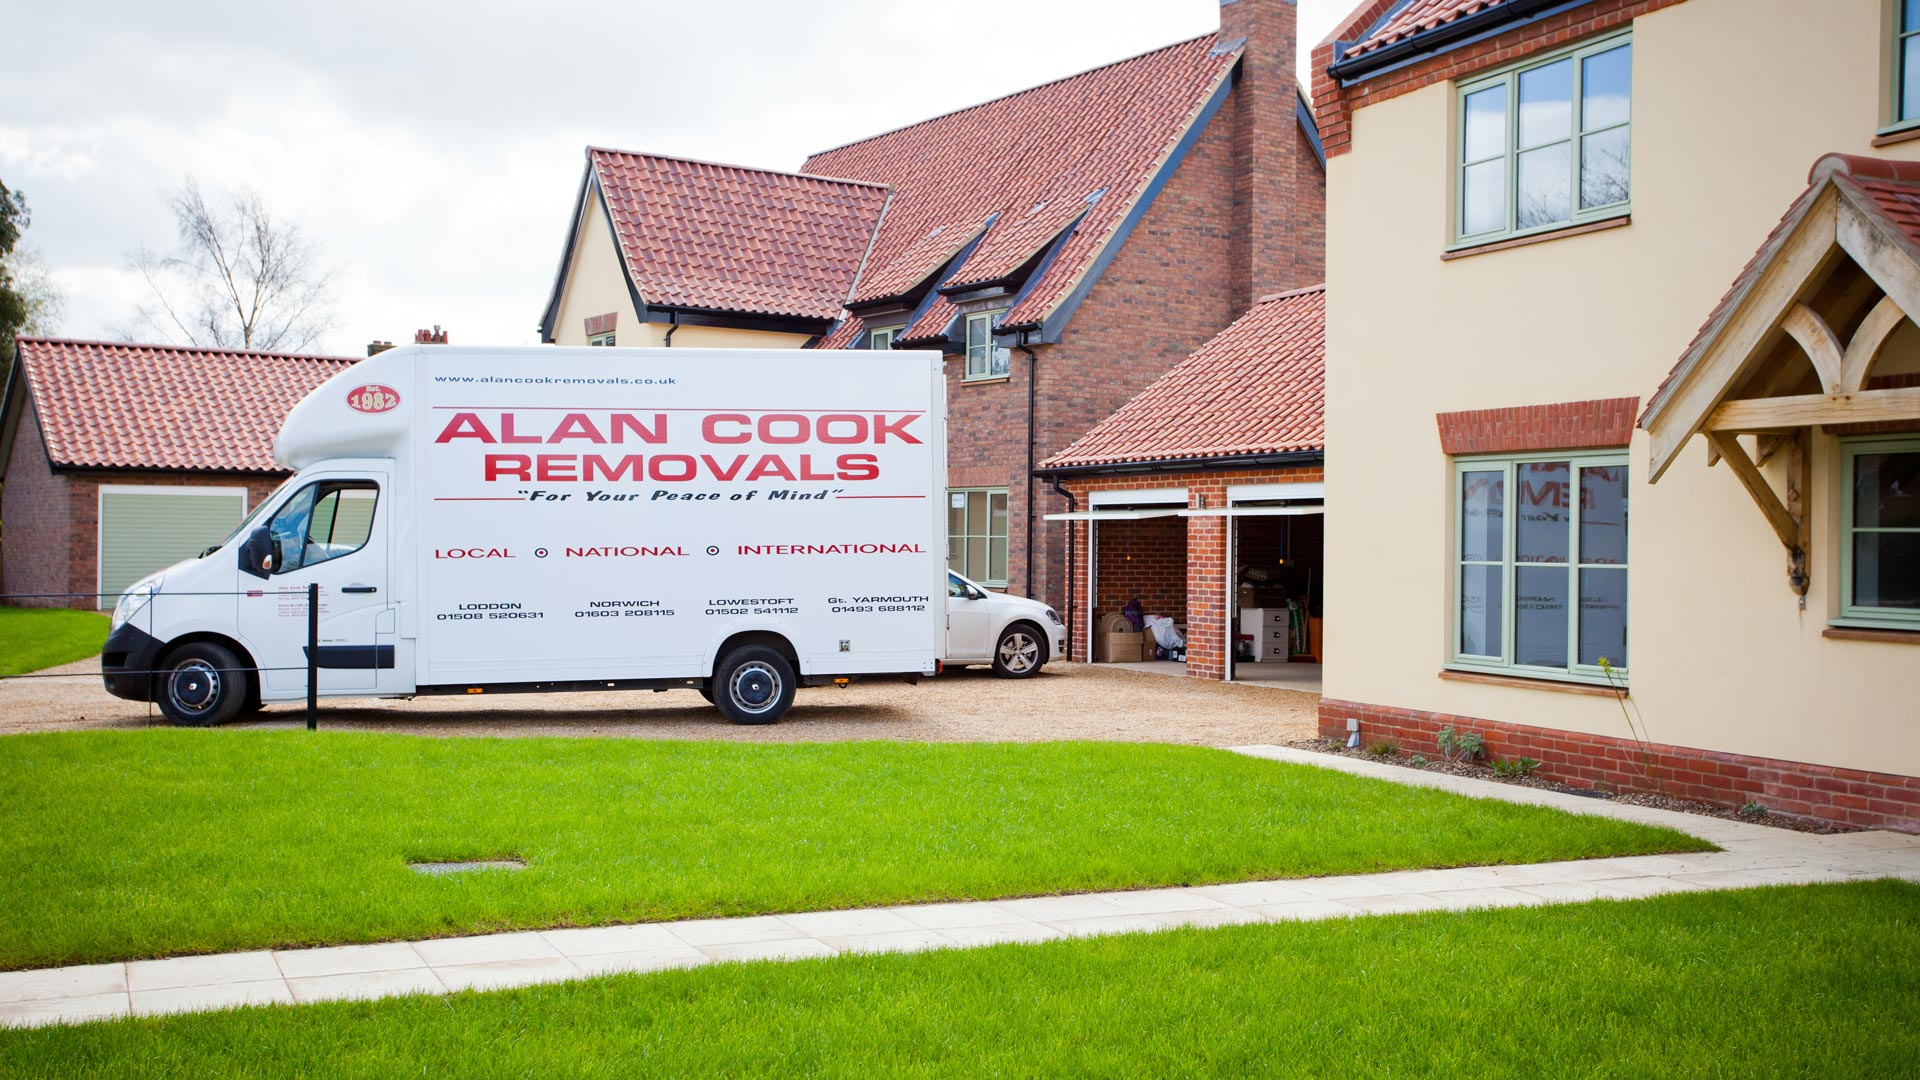 Local, national and international removals - Alan Cook Removals - Of all the Norwich Removals Companies we pride ourselves in offering the most prfessional, 